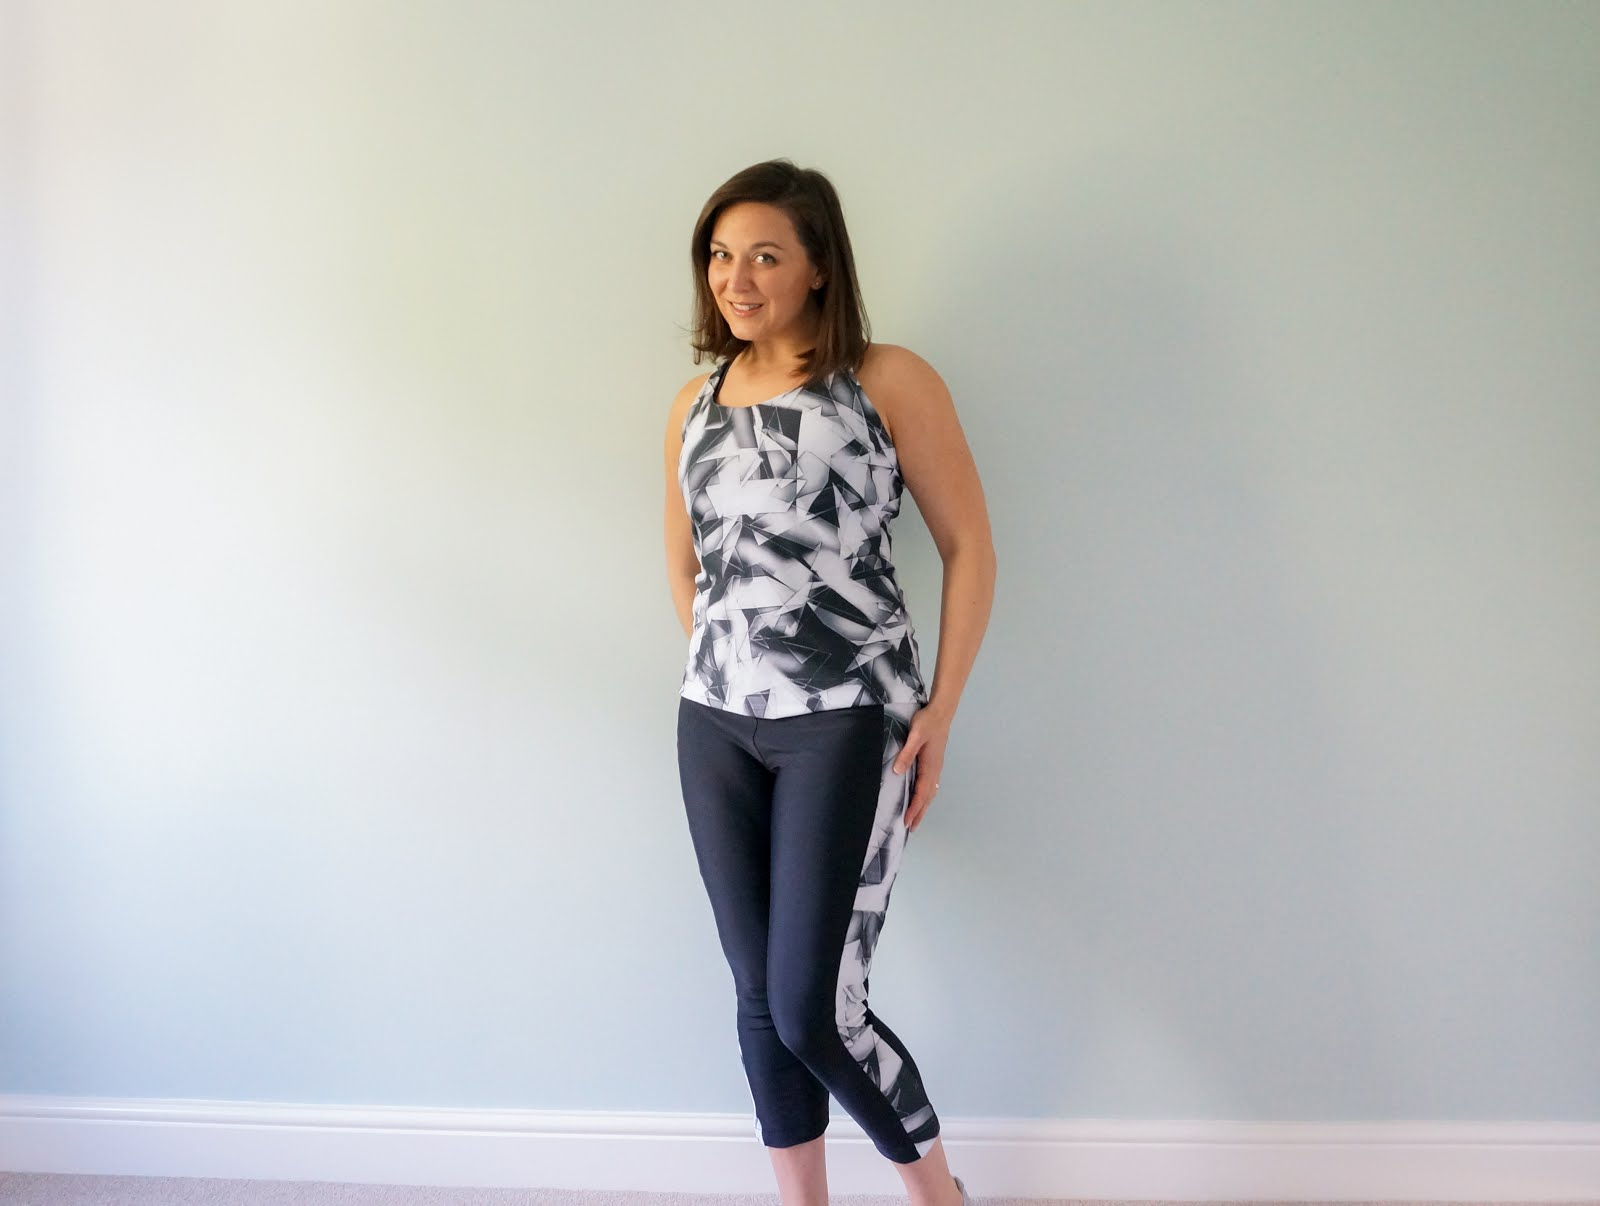 Sewing activewear, plus GBSB live workshop